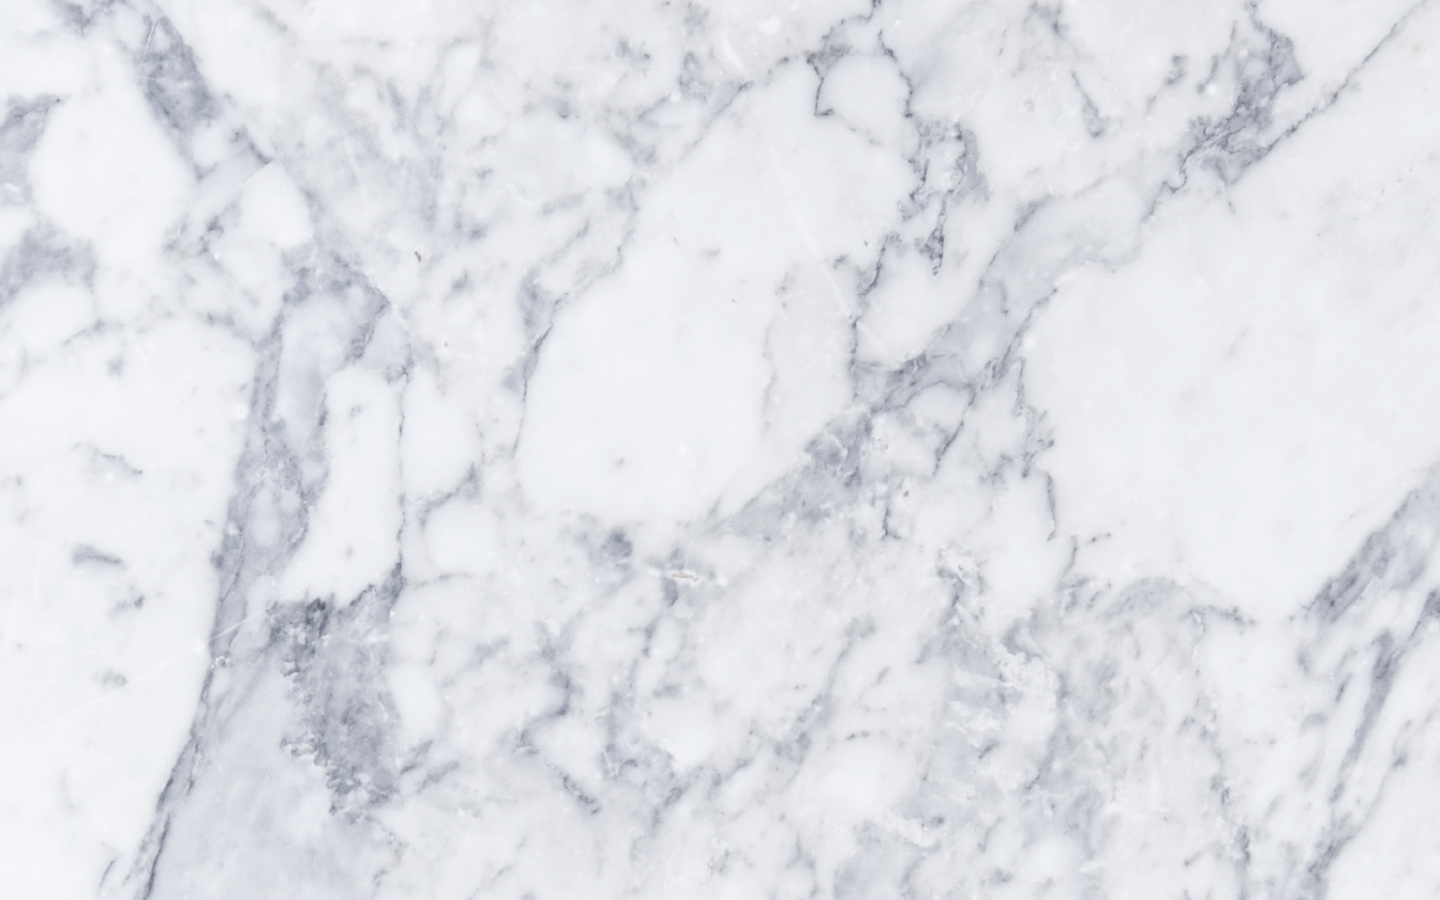 Marble Pink Wallpaper Hd Resolution Marble Desktop Wallpaper Desktop Wallpaper Macbook Macbook Air Wallpaper